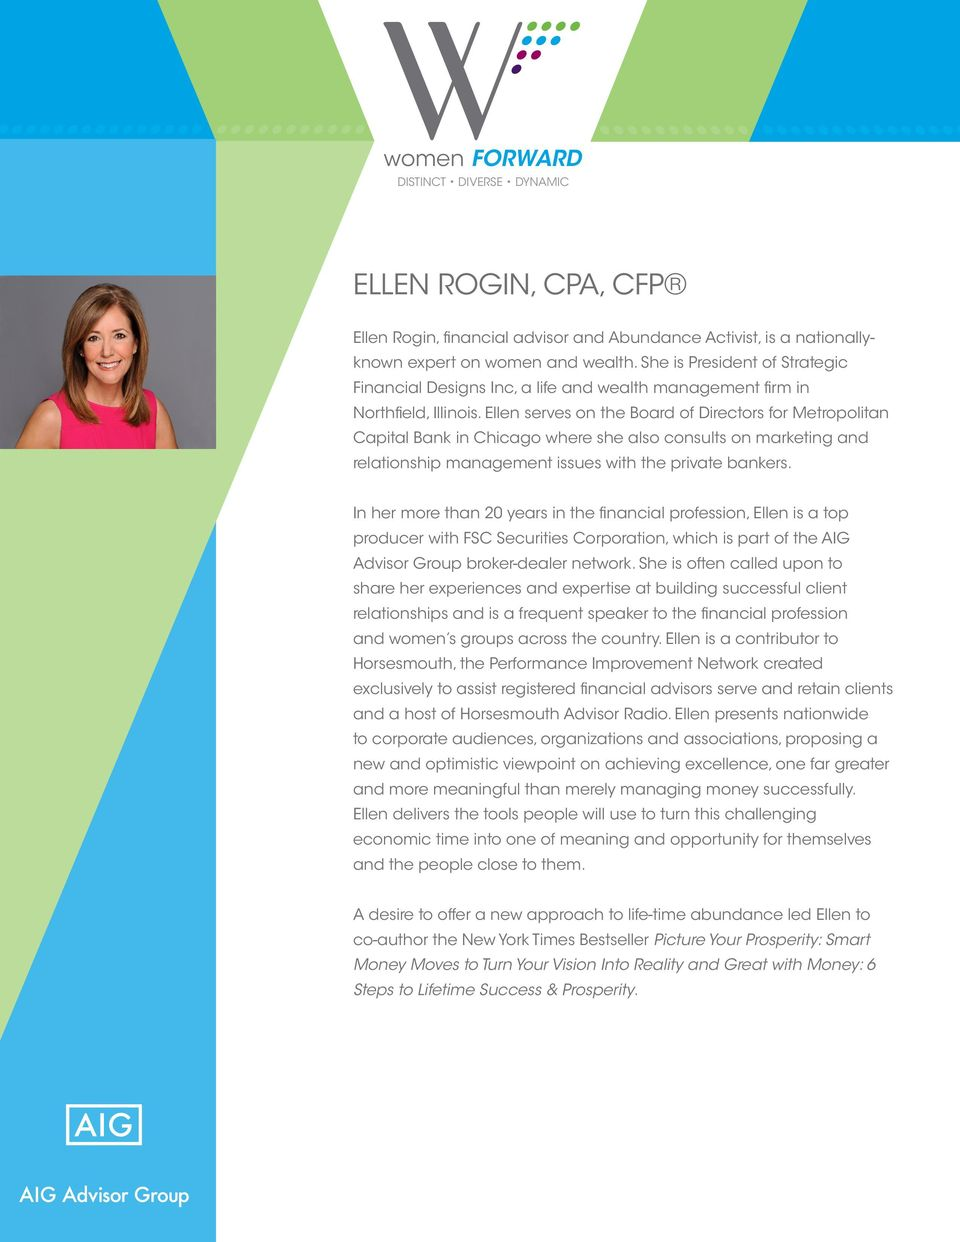 Ellen serves on the Board of Directors for Metropolitan Capital Bank in Chicago where she also consults on marketing and relationship management issues with the private bankers.